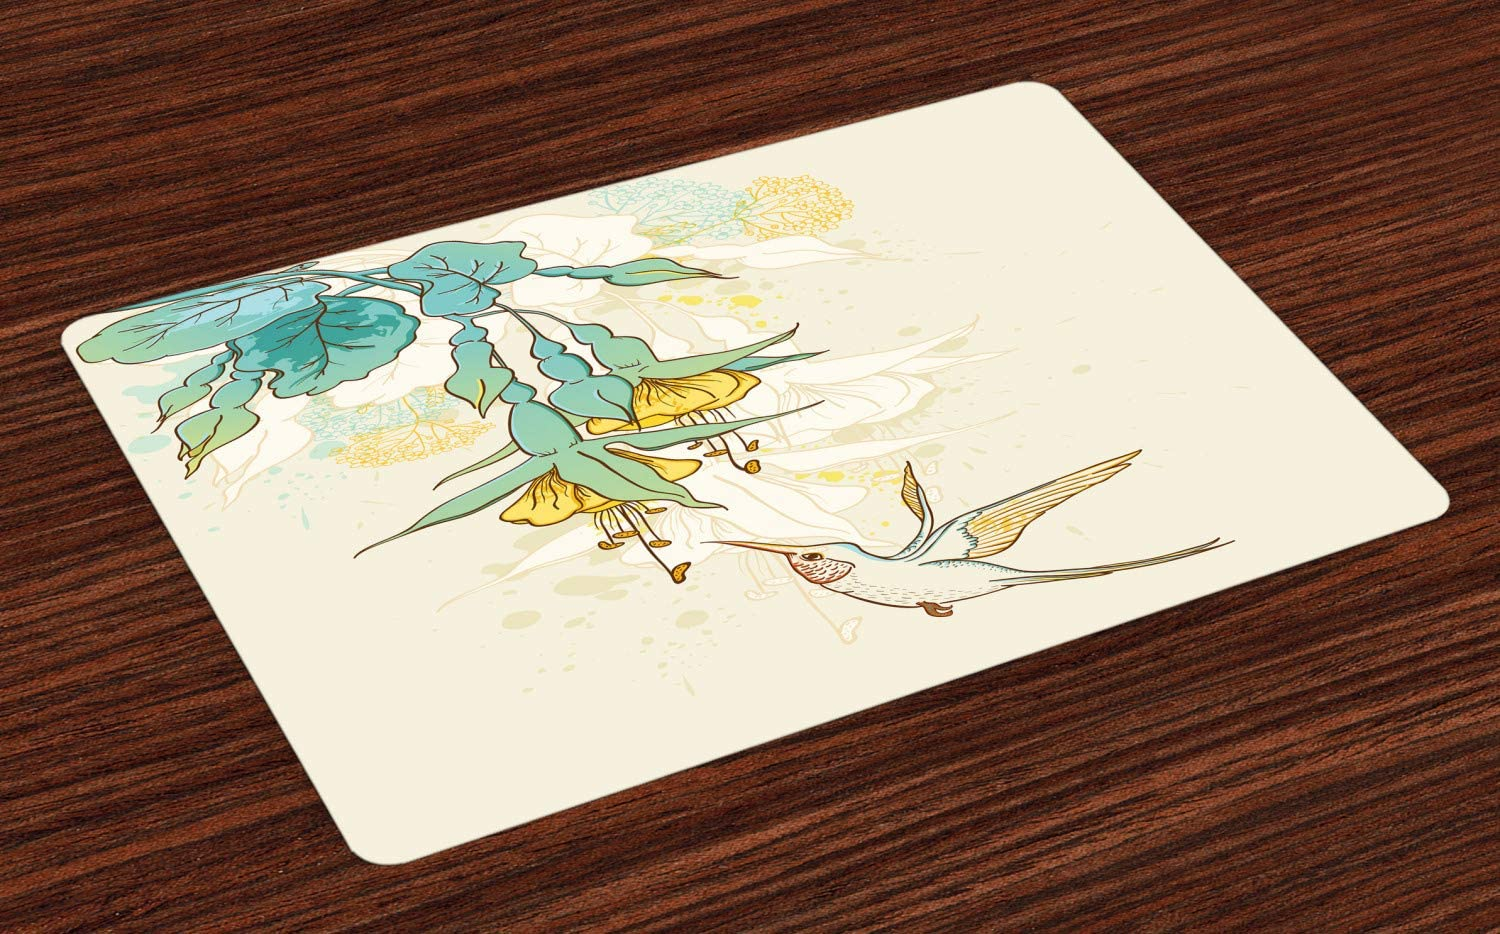 Ambesonne Hummingbird Place Mats Set of 4, Hummingbird and Tropical Flowers Summertime Exotic Plant Nature Art, Washable Fabric Placemats for Dining Room Kitchen Table Decor, Teal Yellow